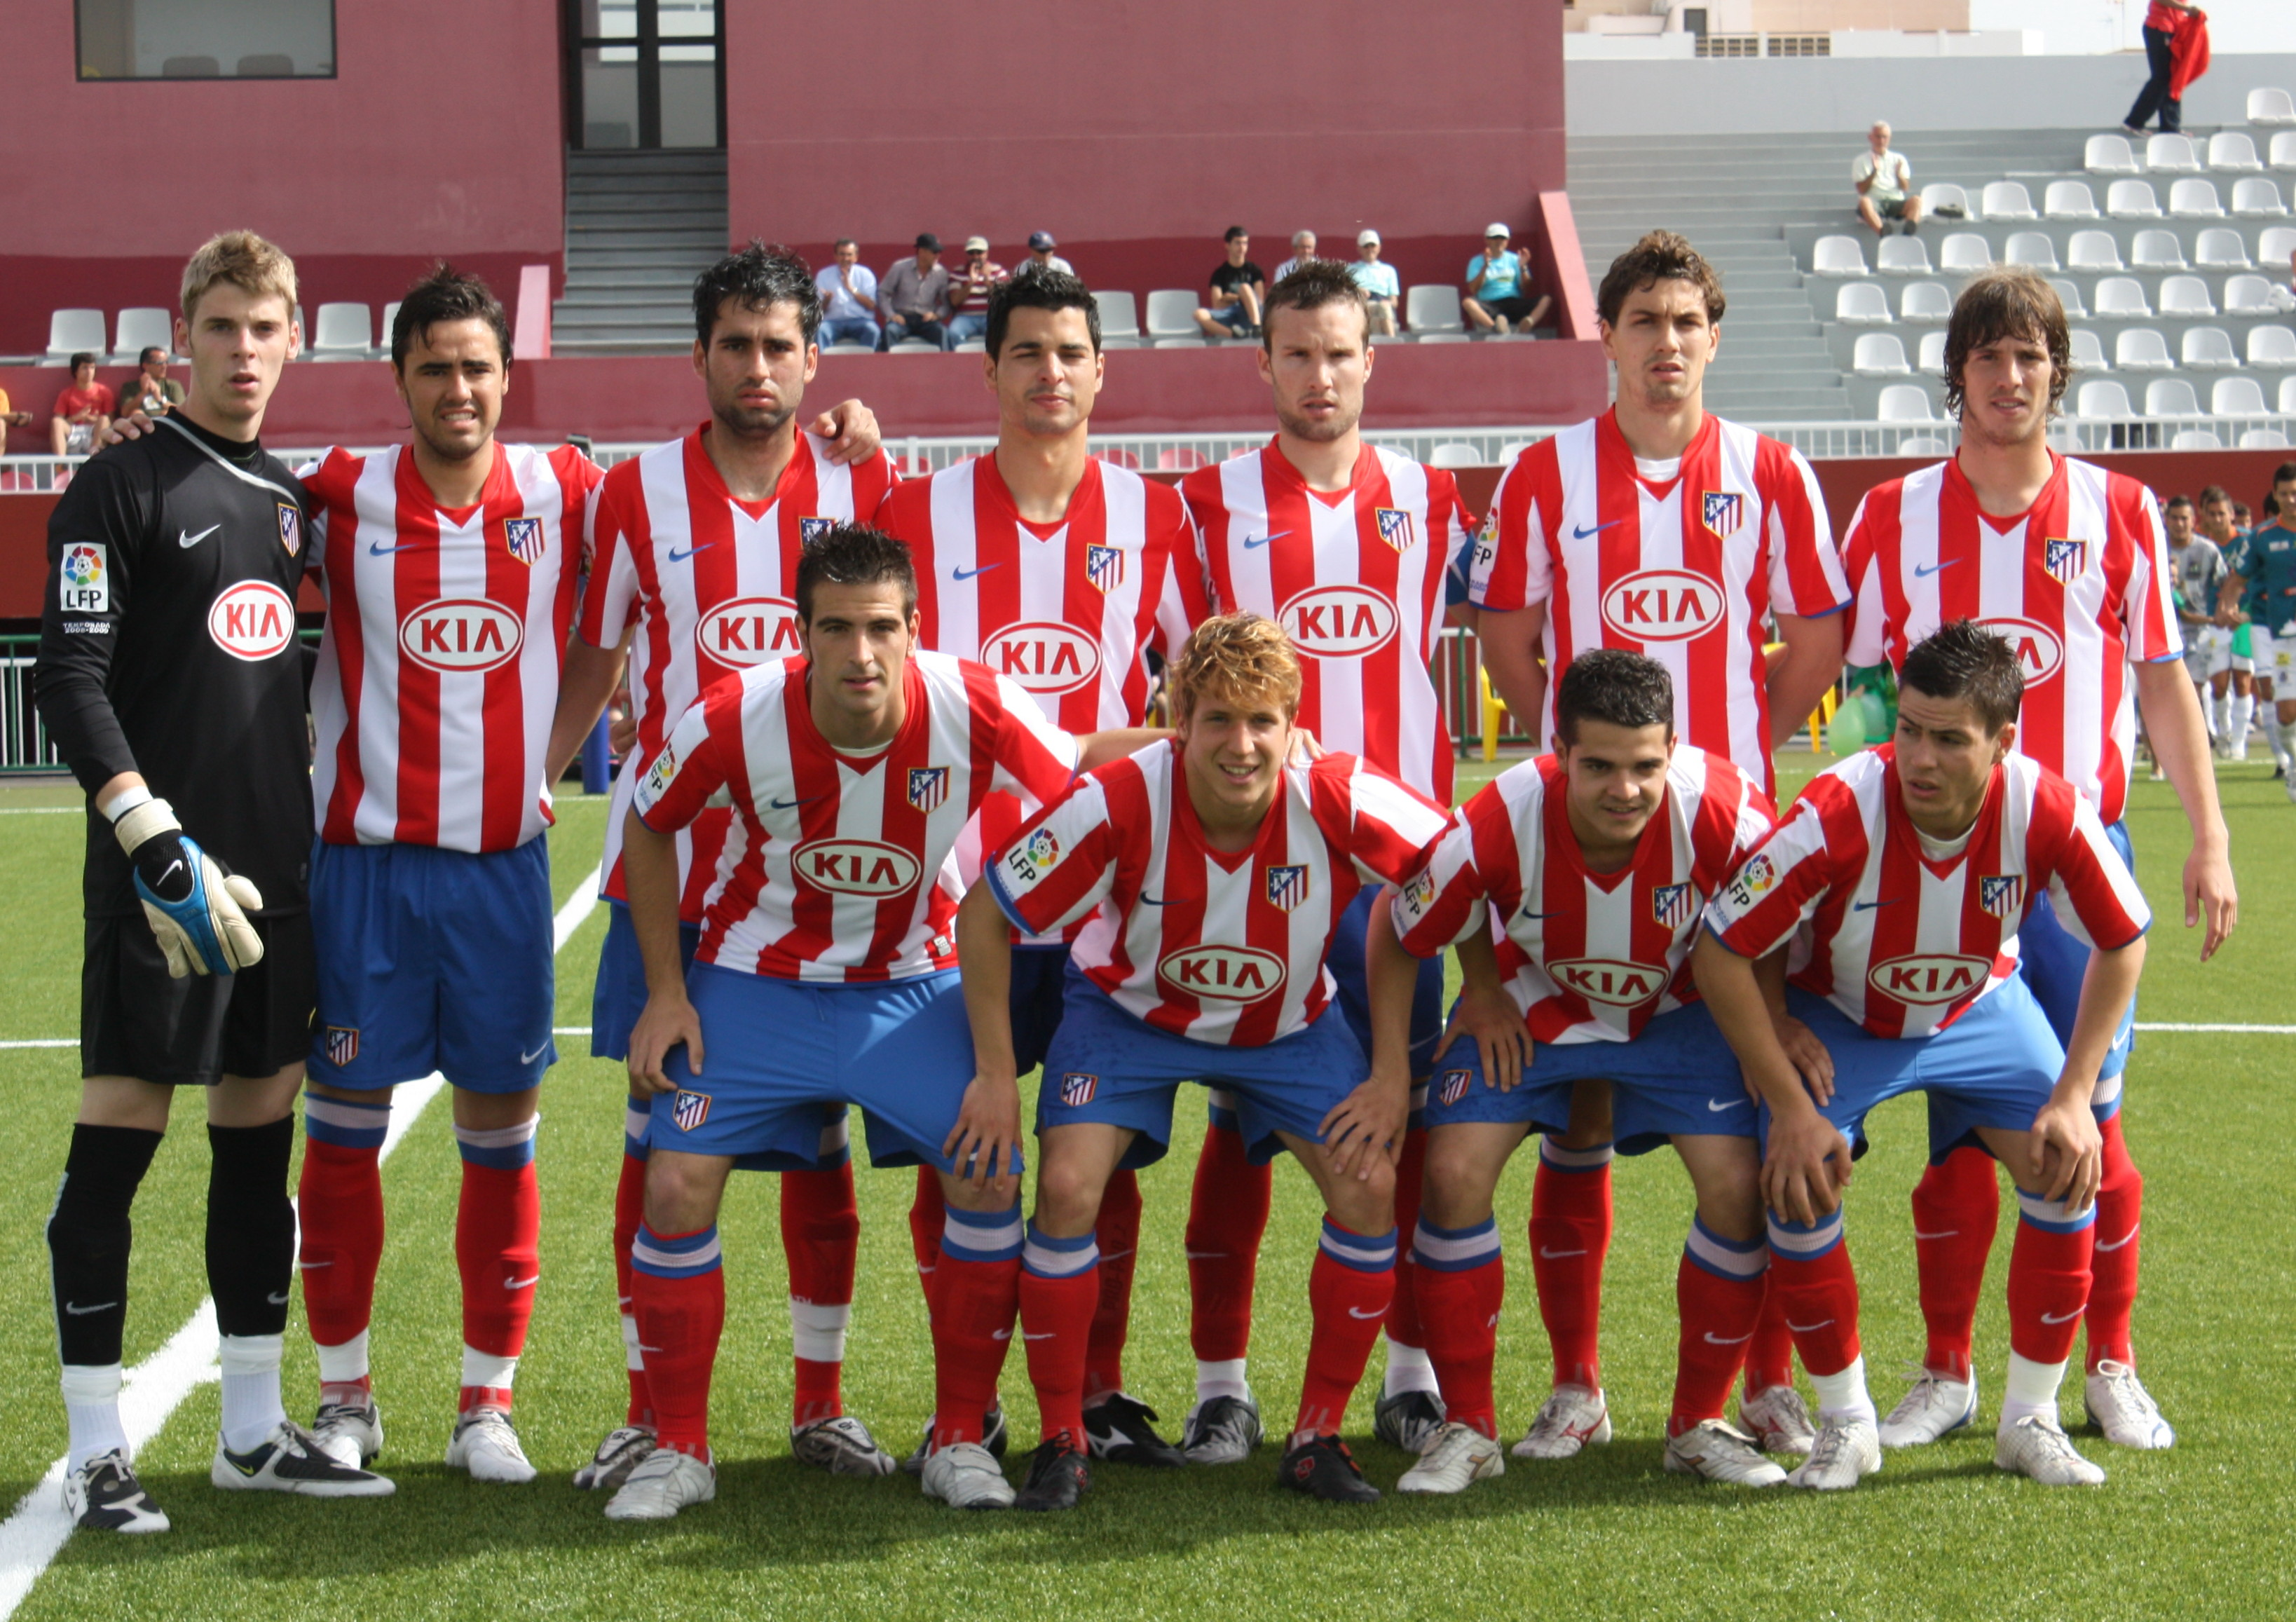 File:Atletico Madrid B.JPG - Wikimedia Commons